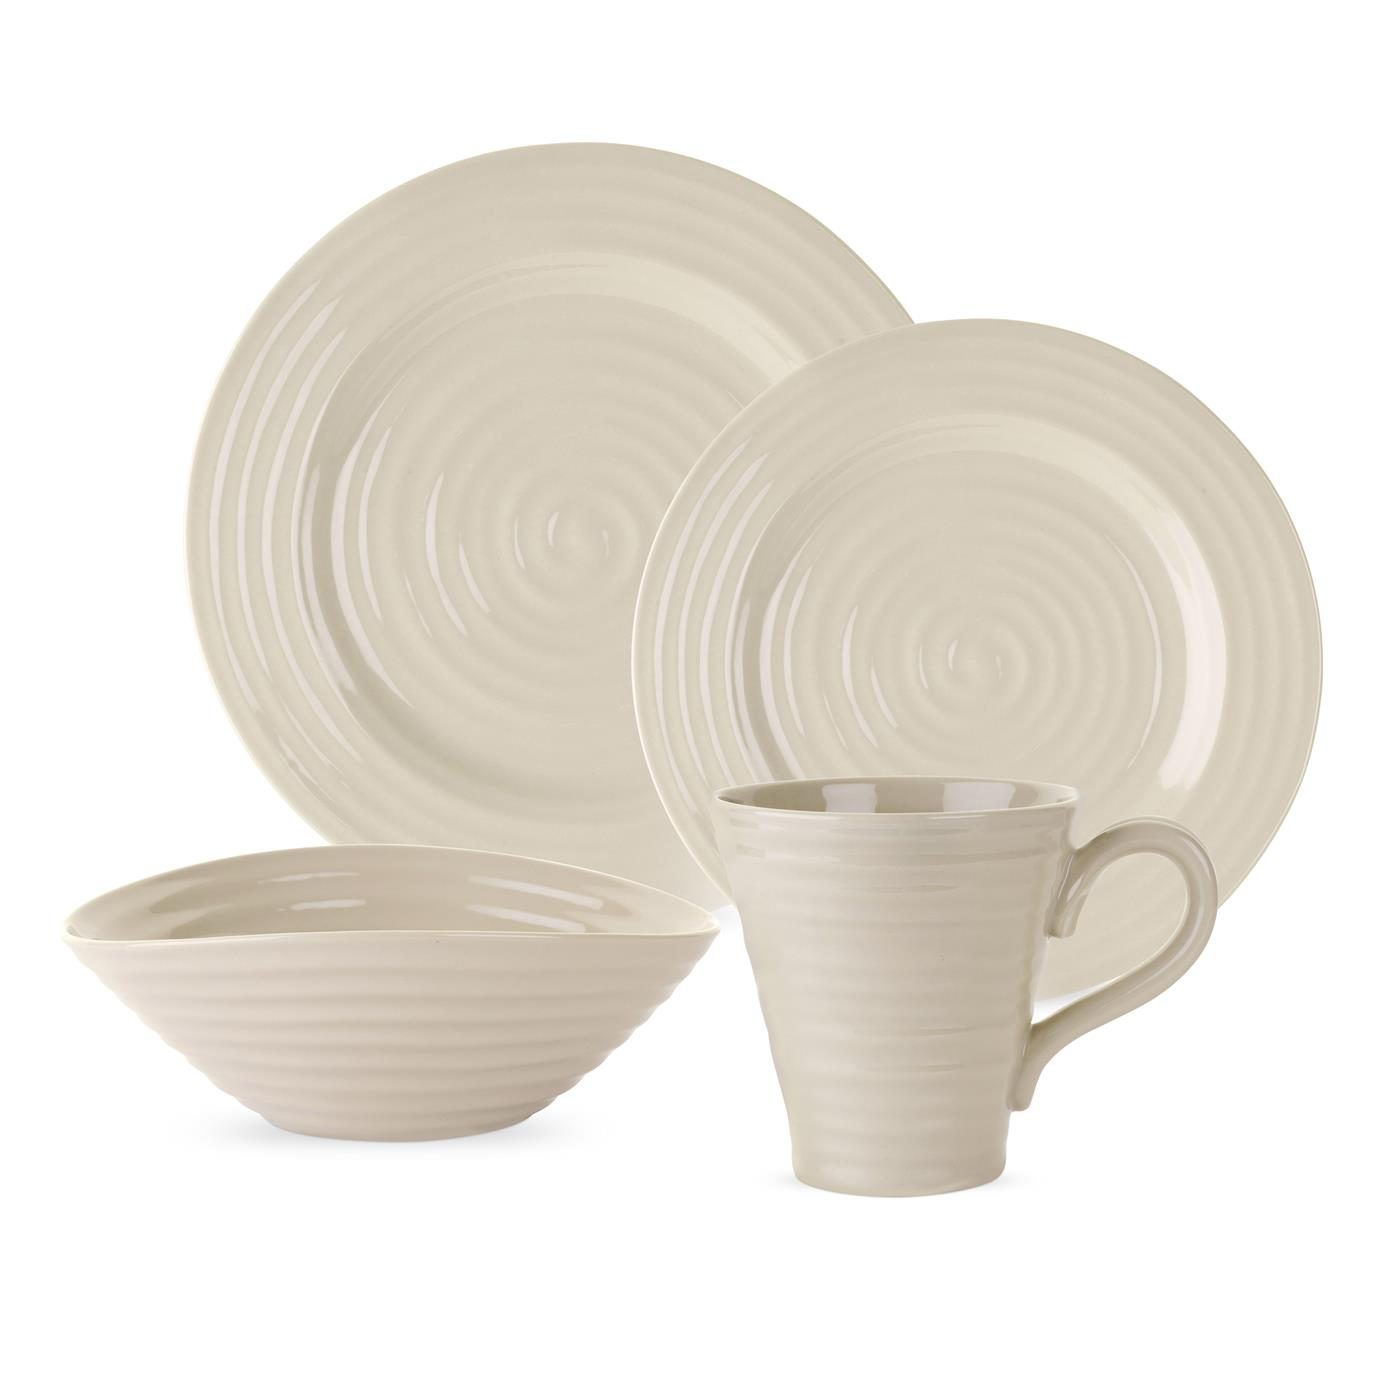 Portmeirion Sophie Conran Pebble 4 piece Place Setting image number 0